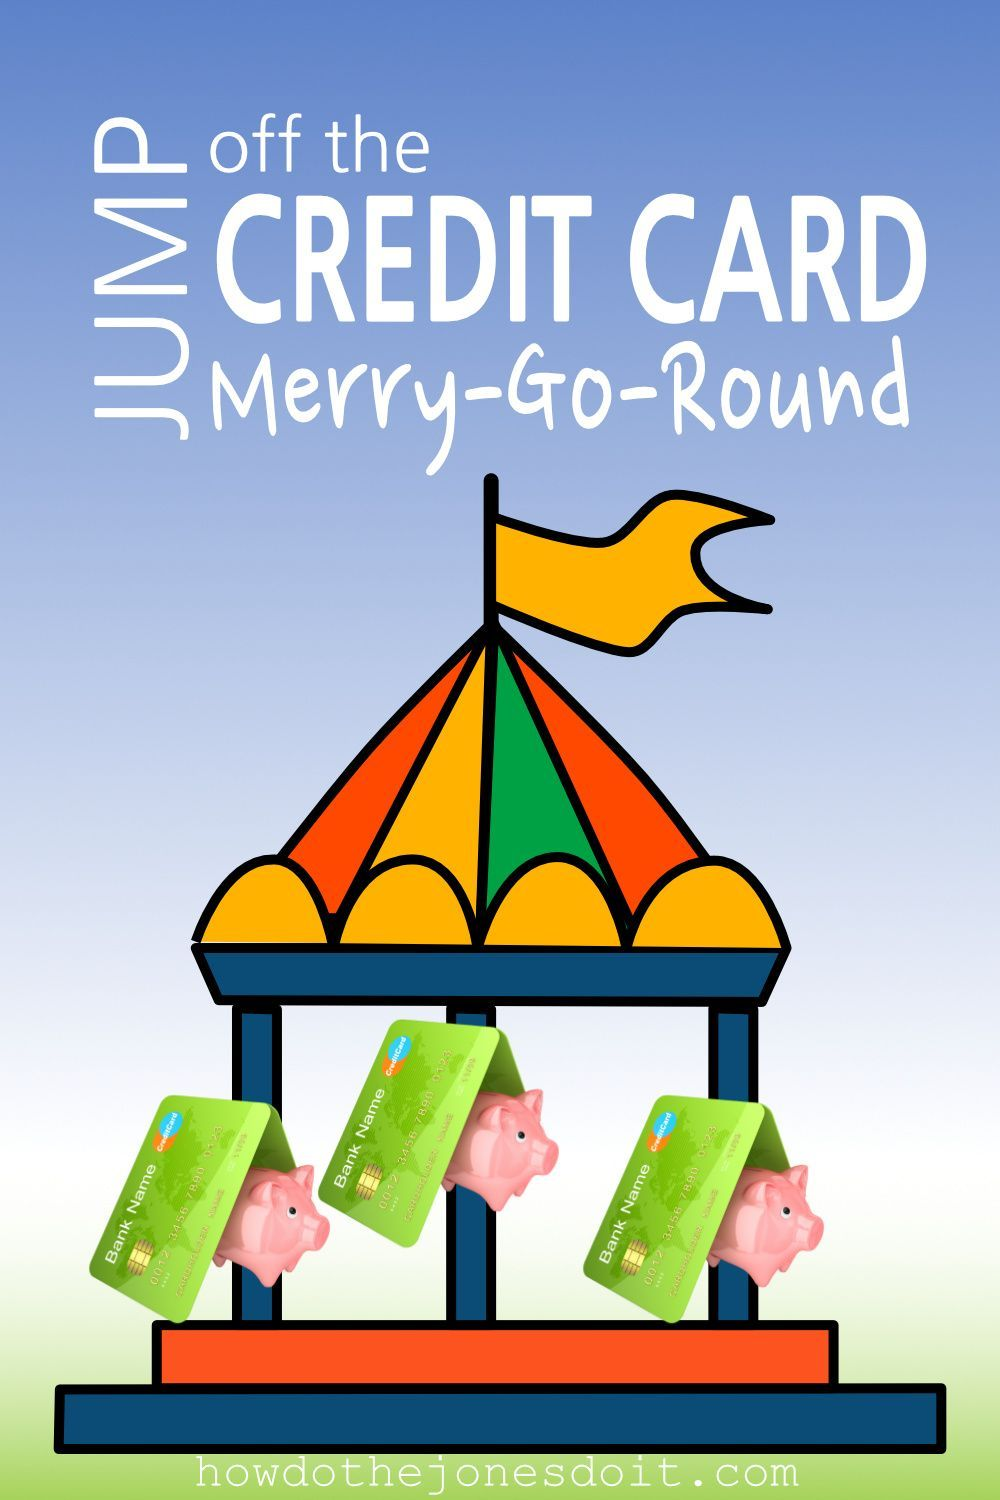 How to jump off the credit card merrygoround miles